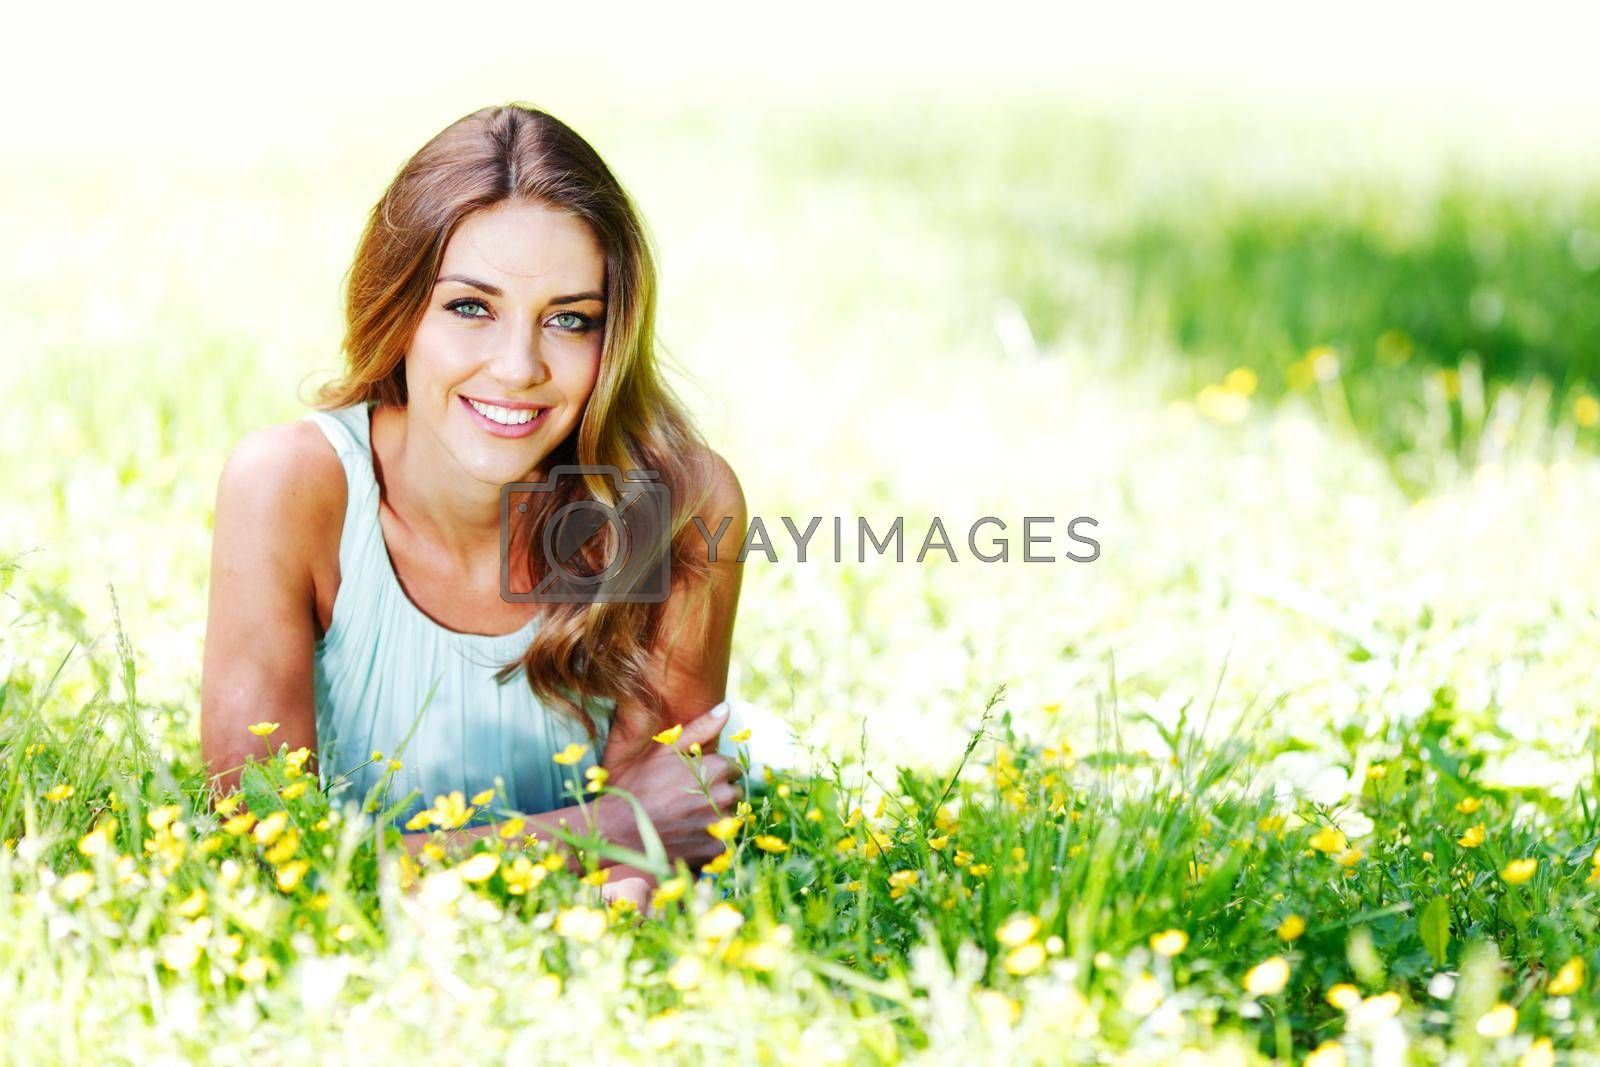 Royalty free image of Woman relaxing on the green grass by Yellowj